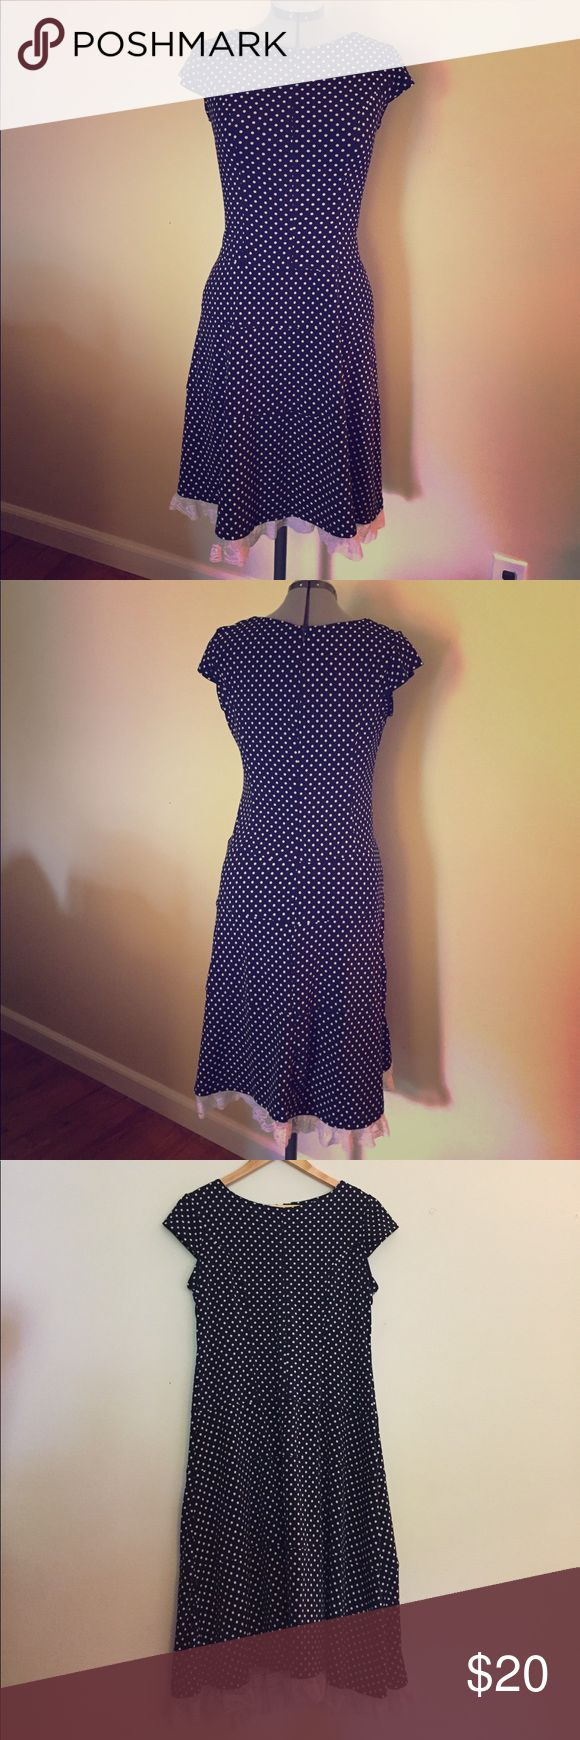 Olivia Matthews polka dot navy cap sleeve dress 10 Olivia Matthews navy with white polkadot cap sleeve midi length dress with lace bottom detail. Light weight fabric with stretch for a flattering fit. Size 10. Great condition! Olivia M Dresses Midi